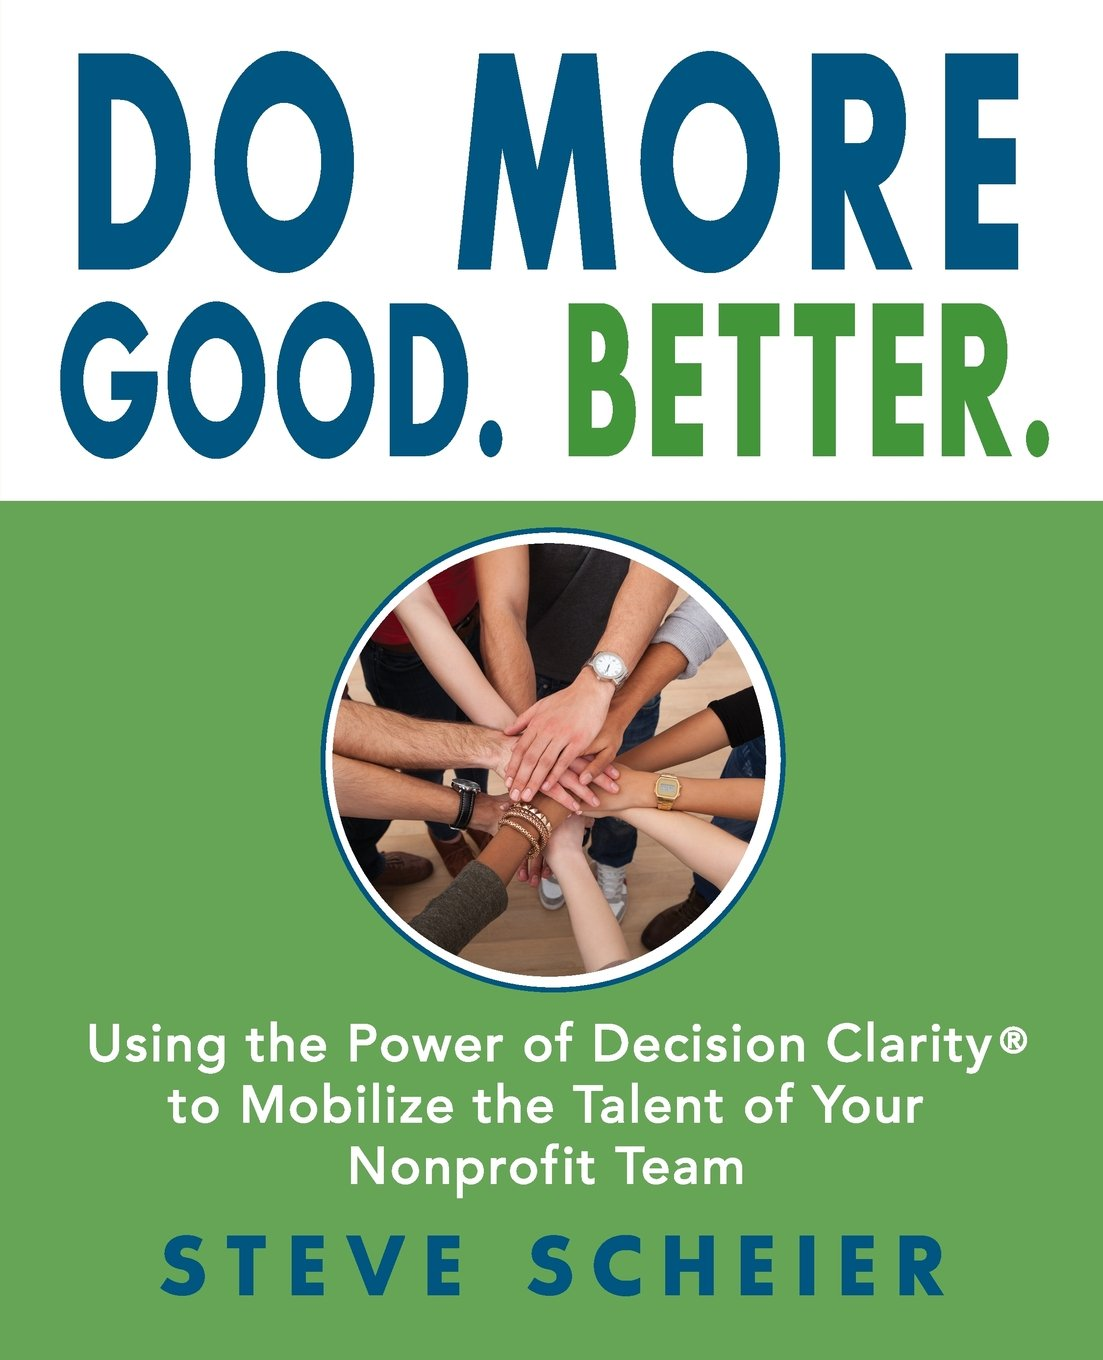 Download Do More Good. Better.: Using the Power of Decision Clarity® to Mobilize the Talent of Your Nonprofit Team PDF